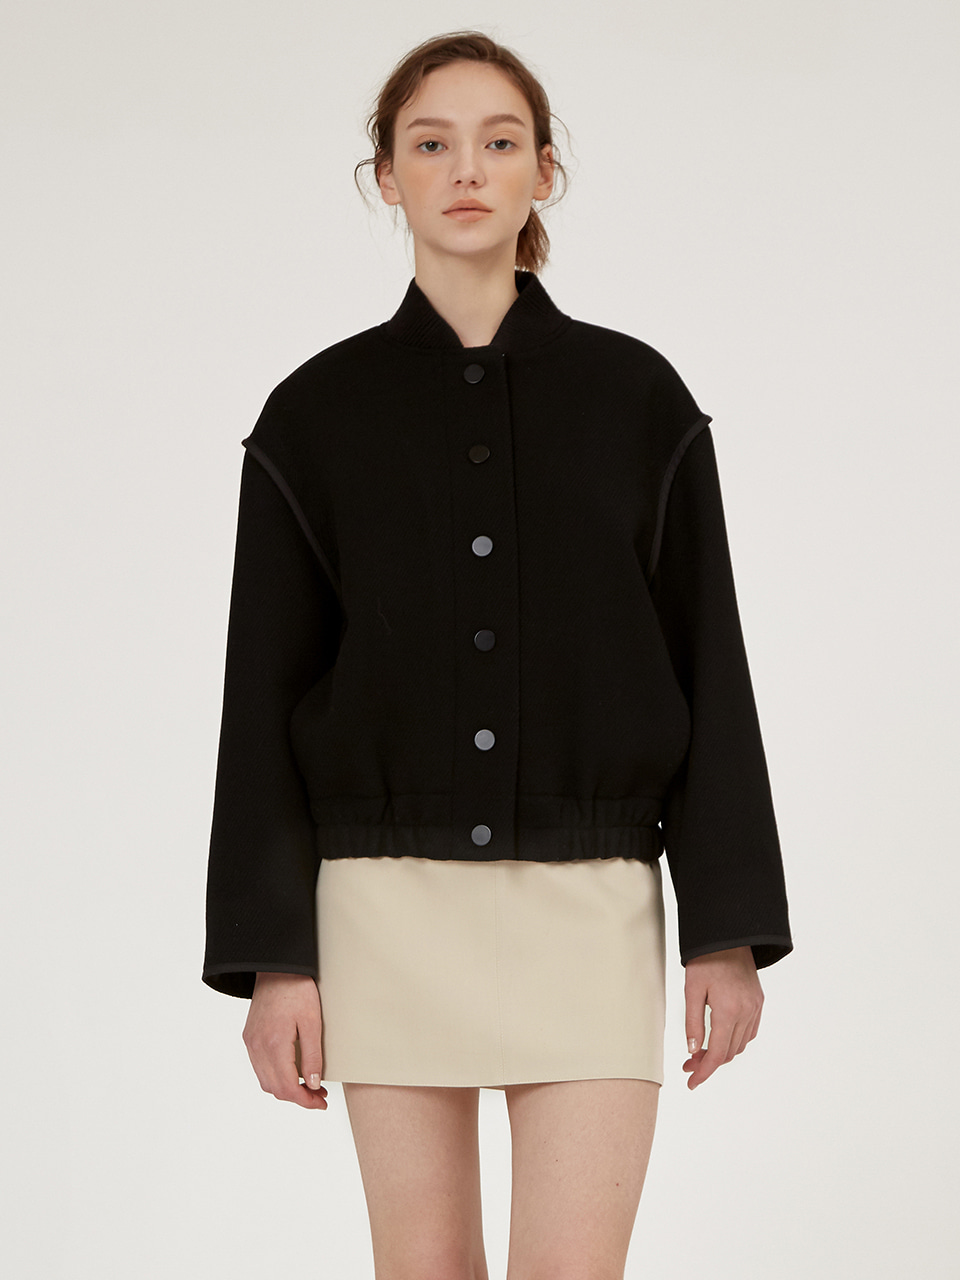 RIBBED KNIT WOOL BLOUSON JACKET